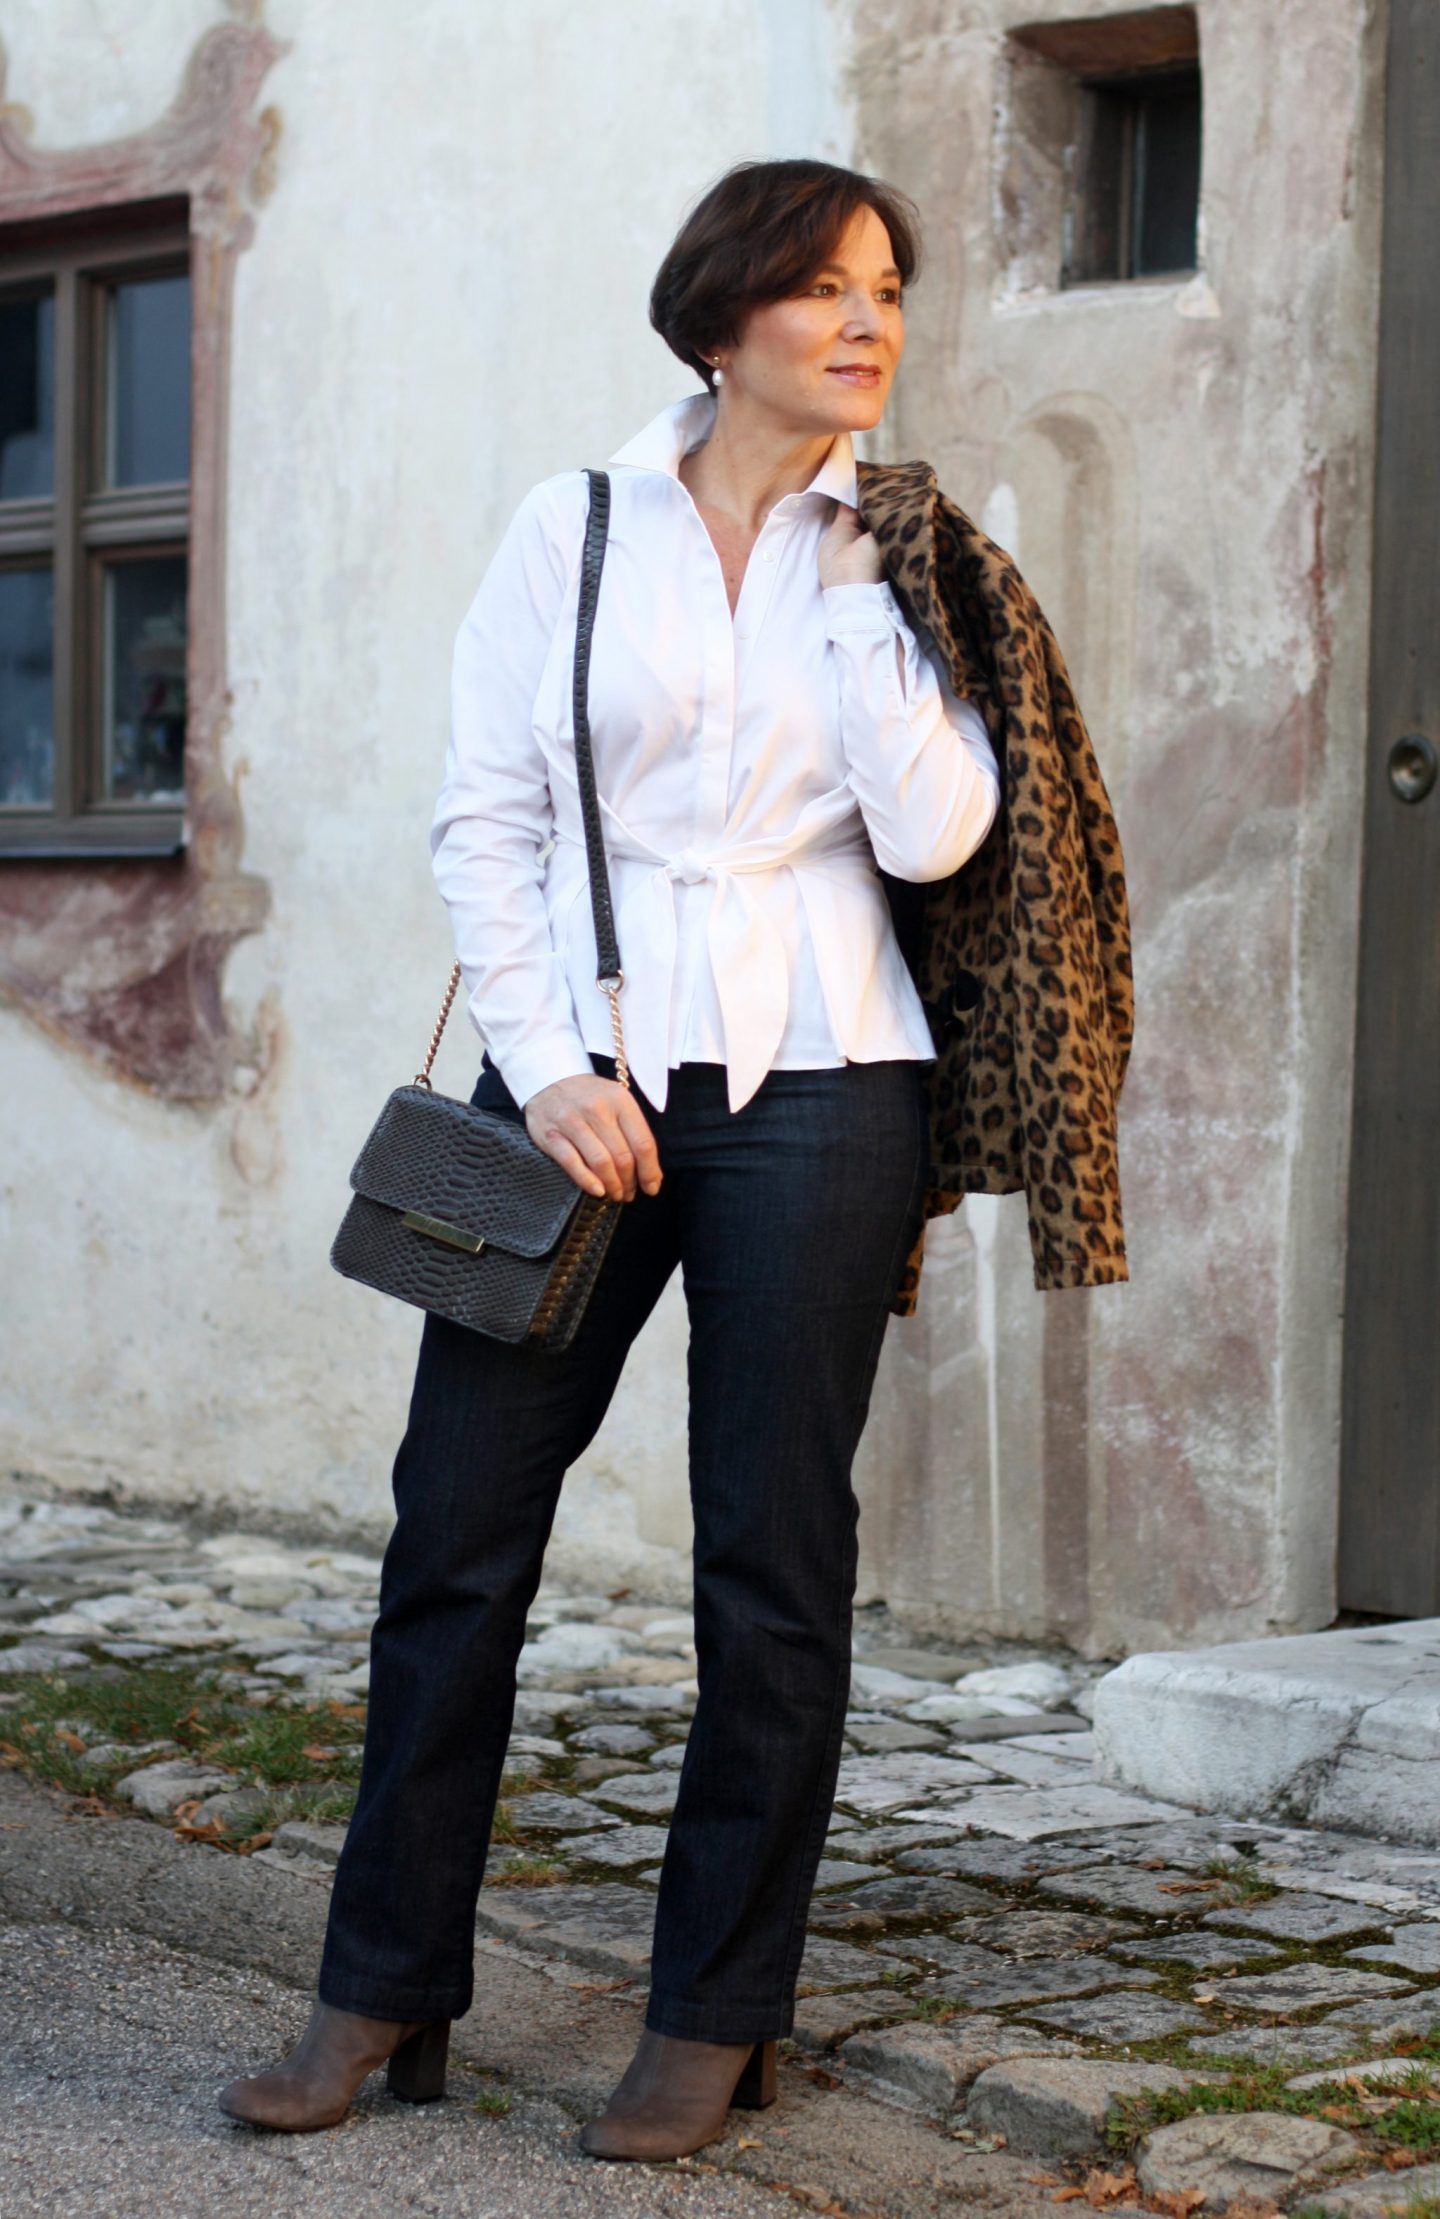 Herbsttrend Leo Jeans Klassische Weisse Bluse 50plus Blogger LadyofStyle